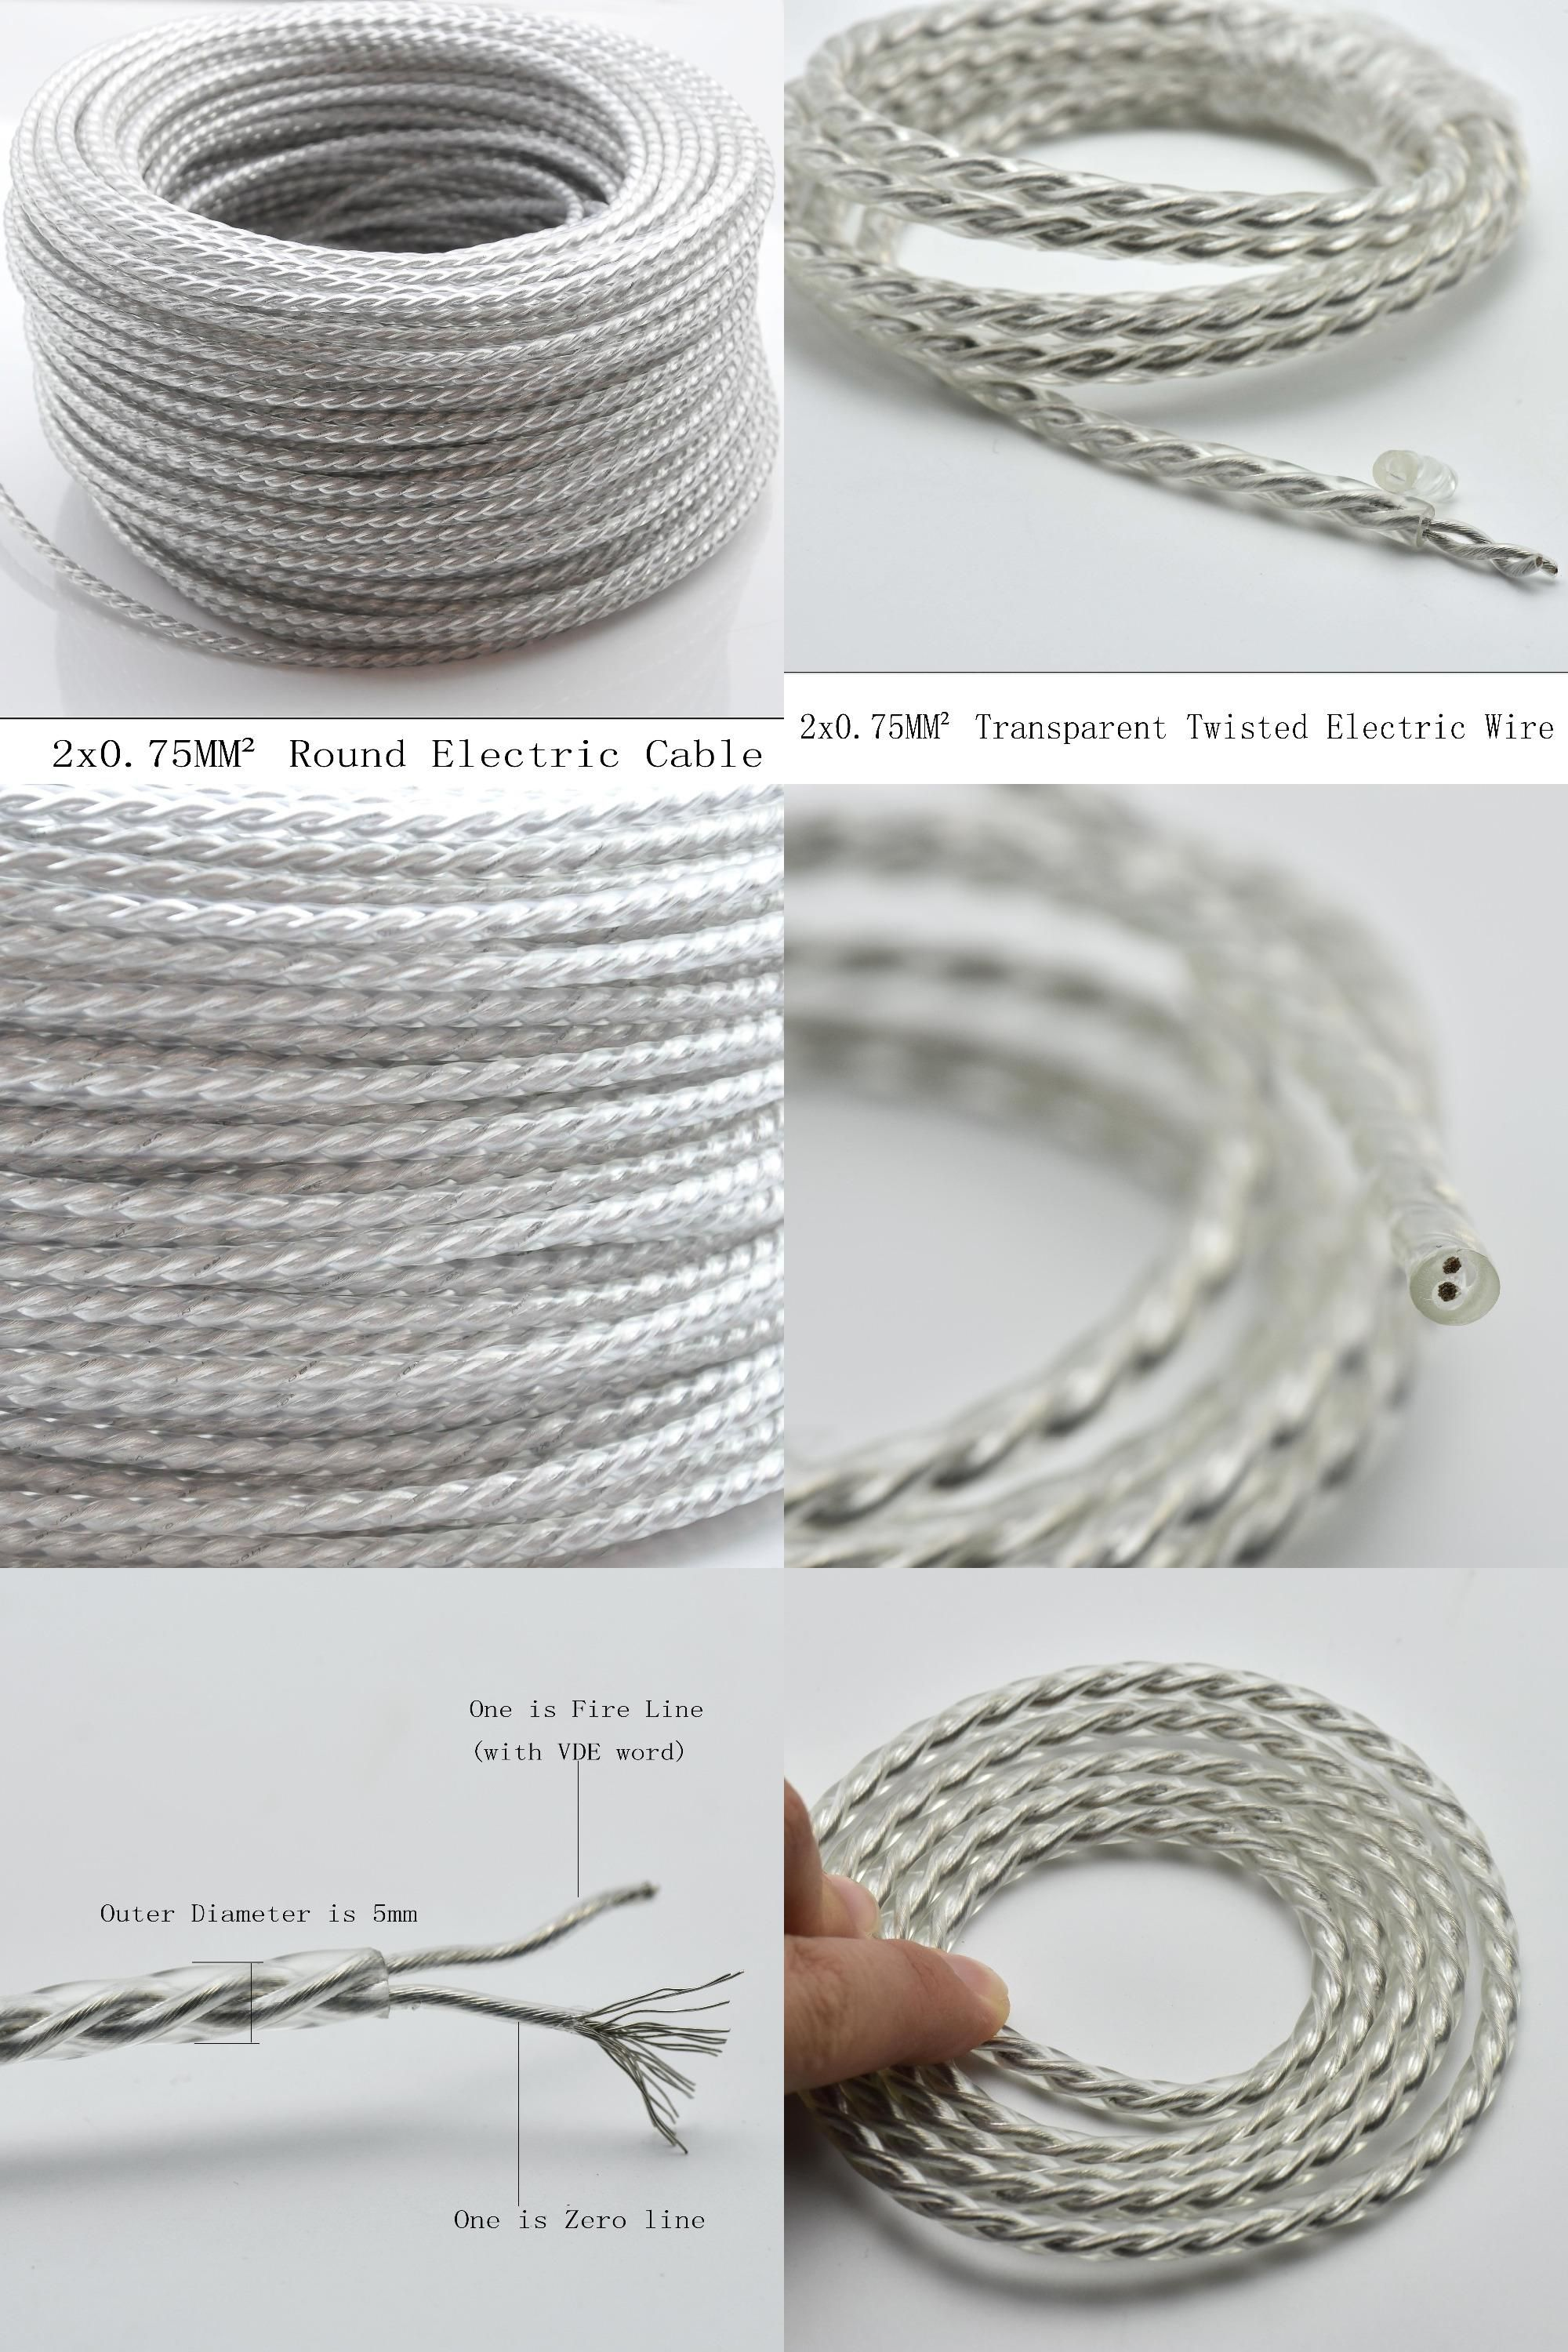 Visit to Buy] 2*0.75mm 5M Round Textile Wire Transparent Twist ...